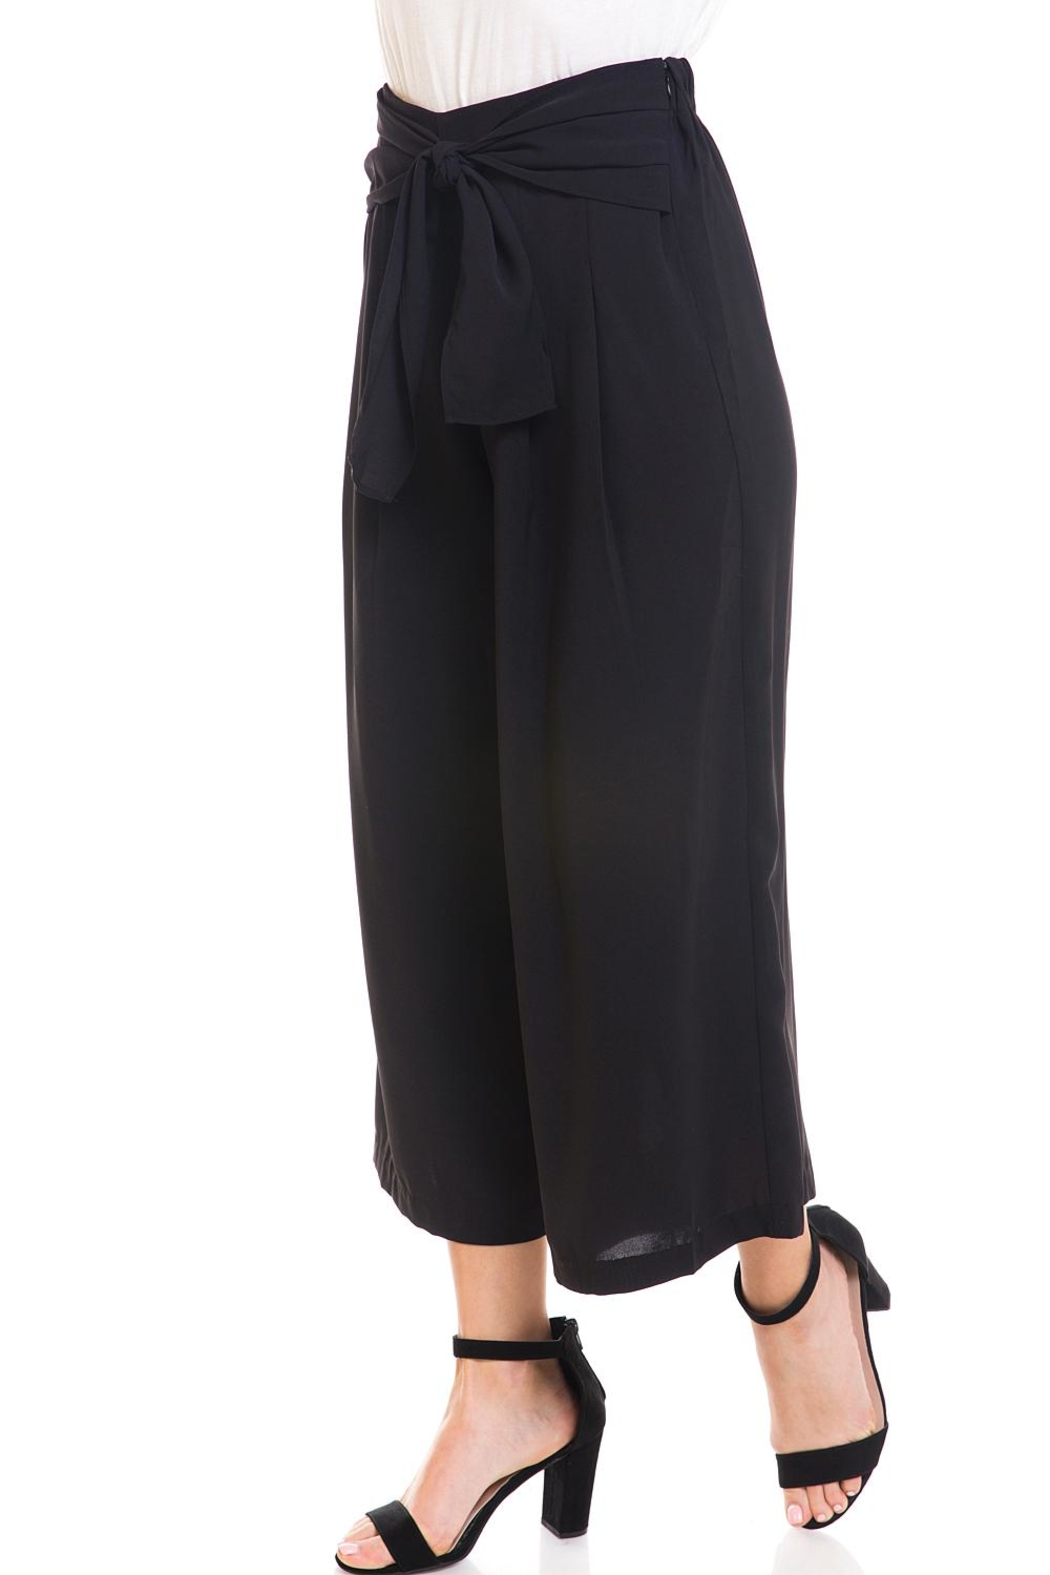 Do & Be Tie-Front Cropped Pants - Side Cropped Image